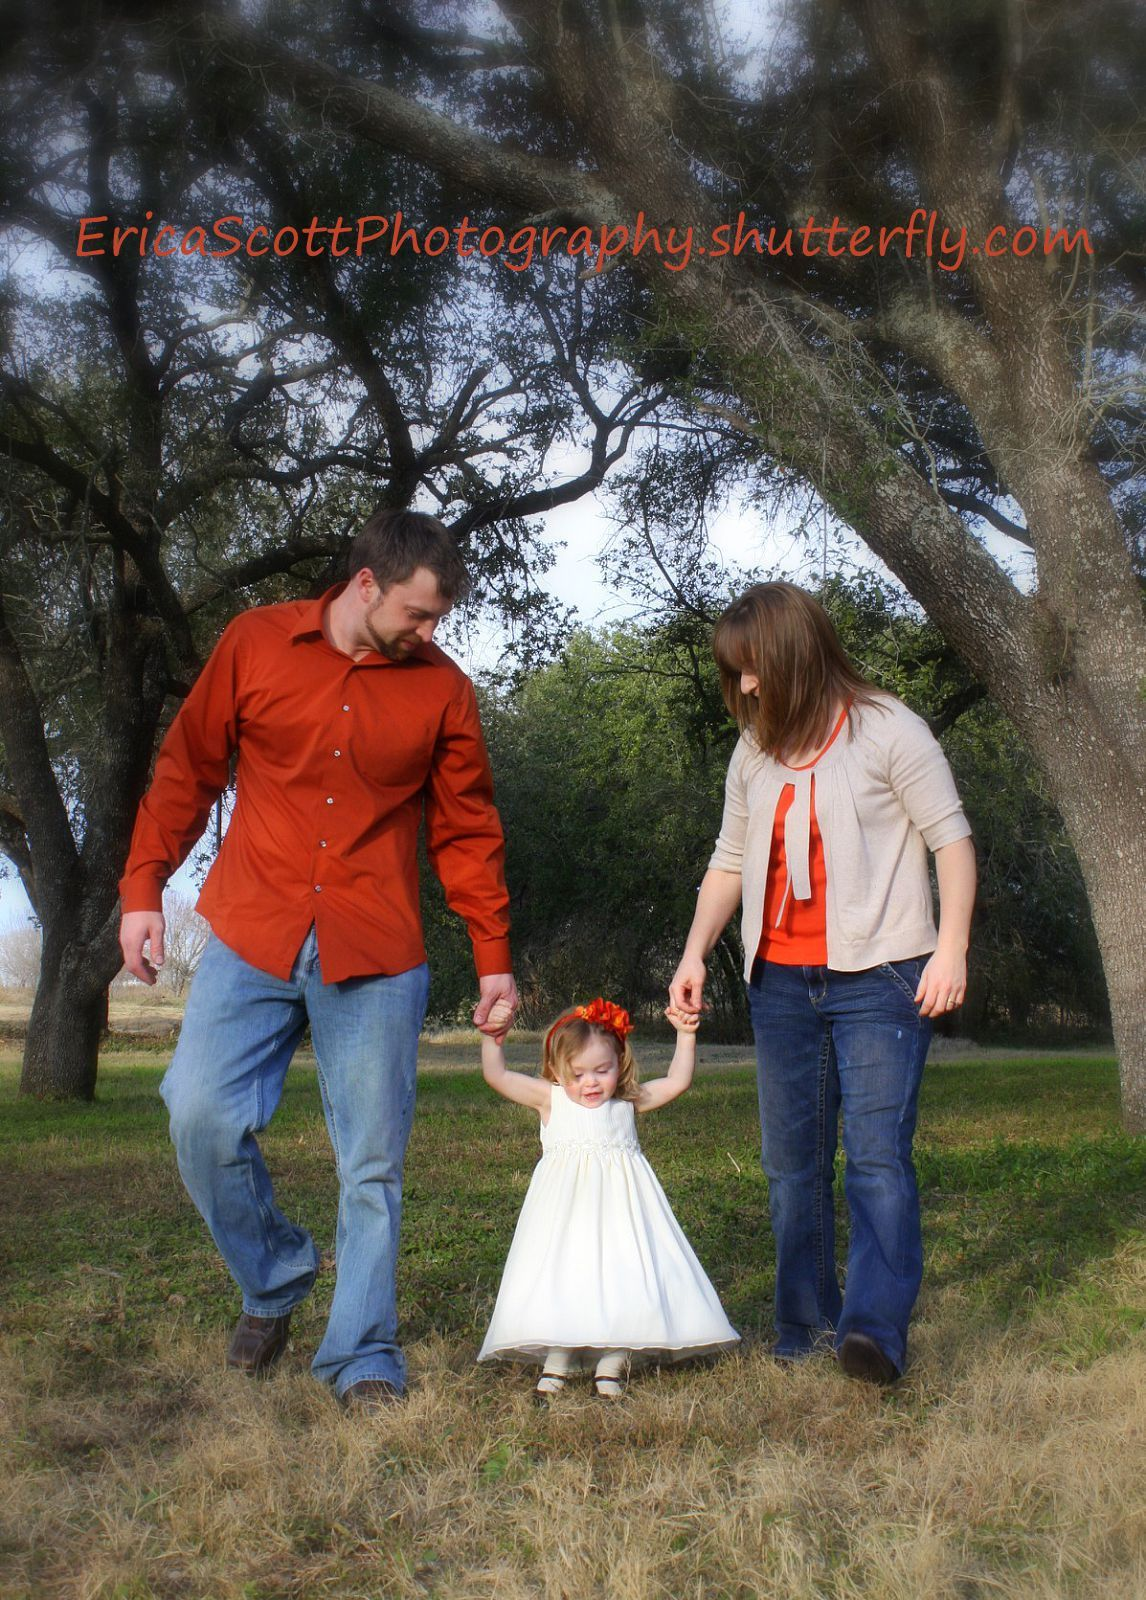 Family Outdoor Portrait Photography - Natural Lighting | Portraits ...